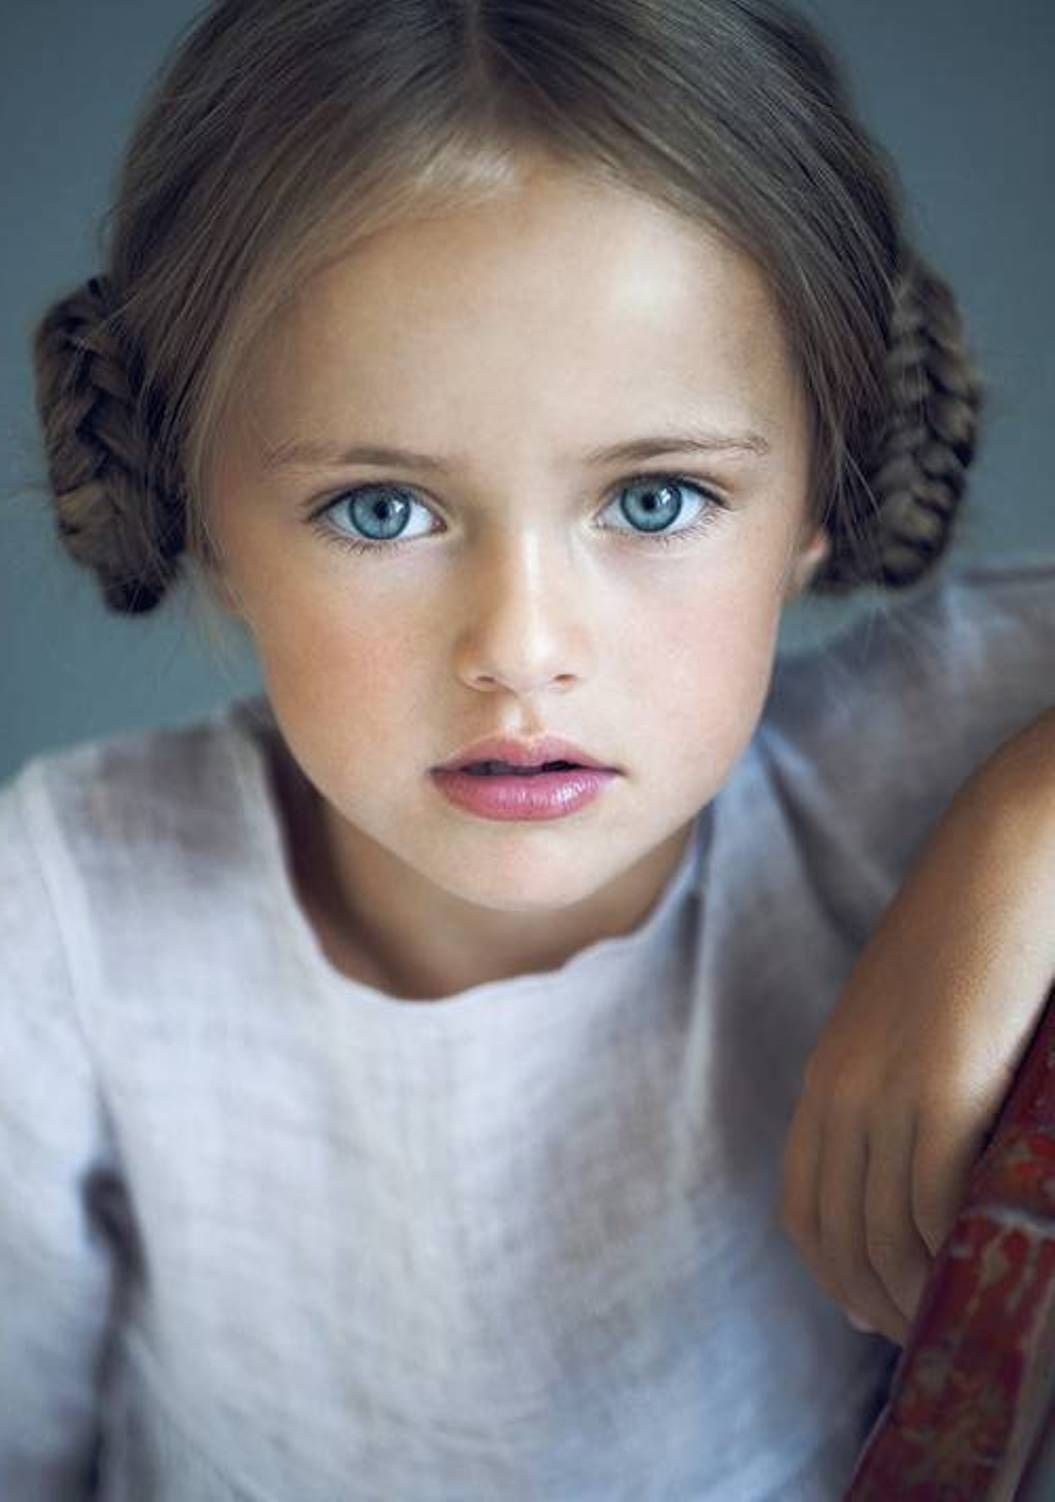 Little girl hairstyles ideas to try this year hairstyles and make